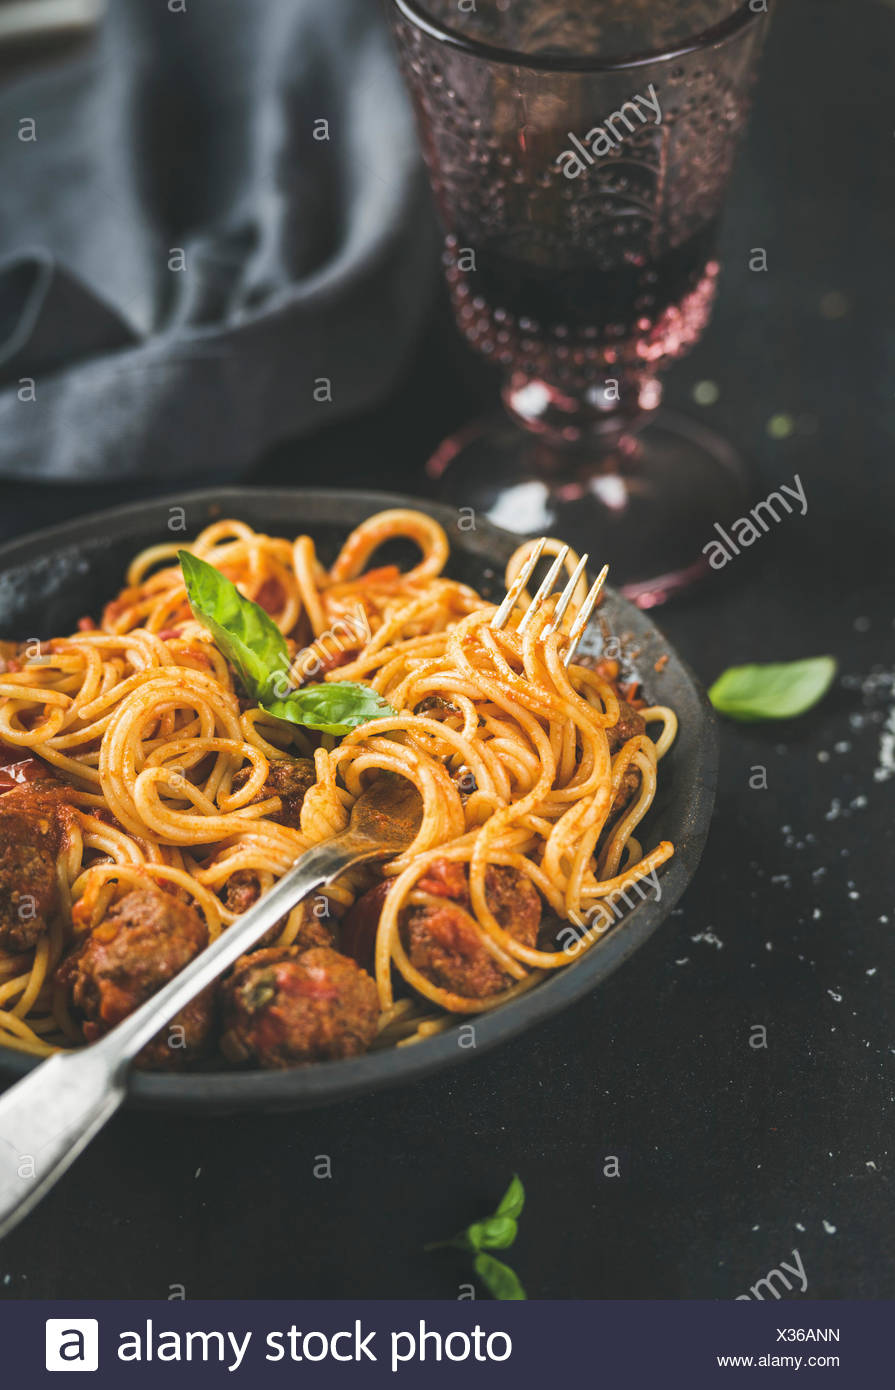 Italian pasta dinner. Spaghetti with meatballas, fresh basil leaves in dark plate and red wine in vintage glass over black background, selective focus - Stock Image